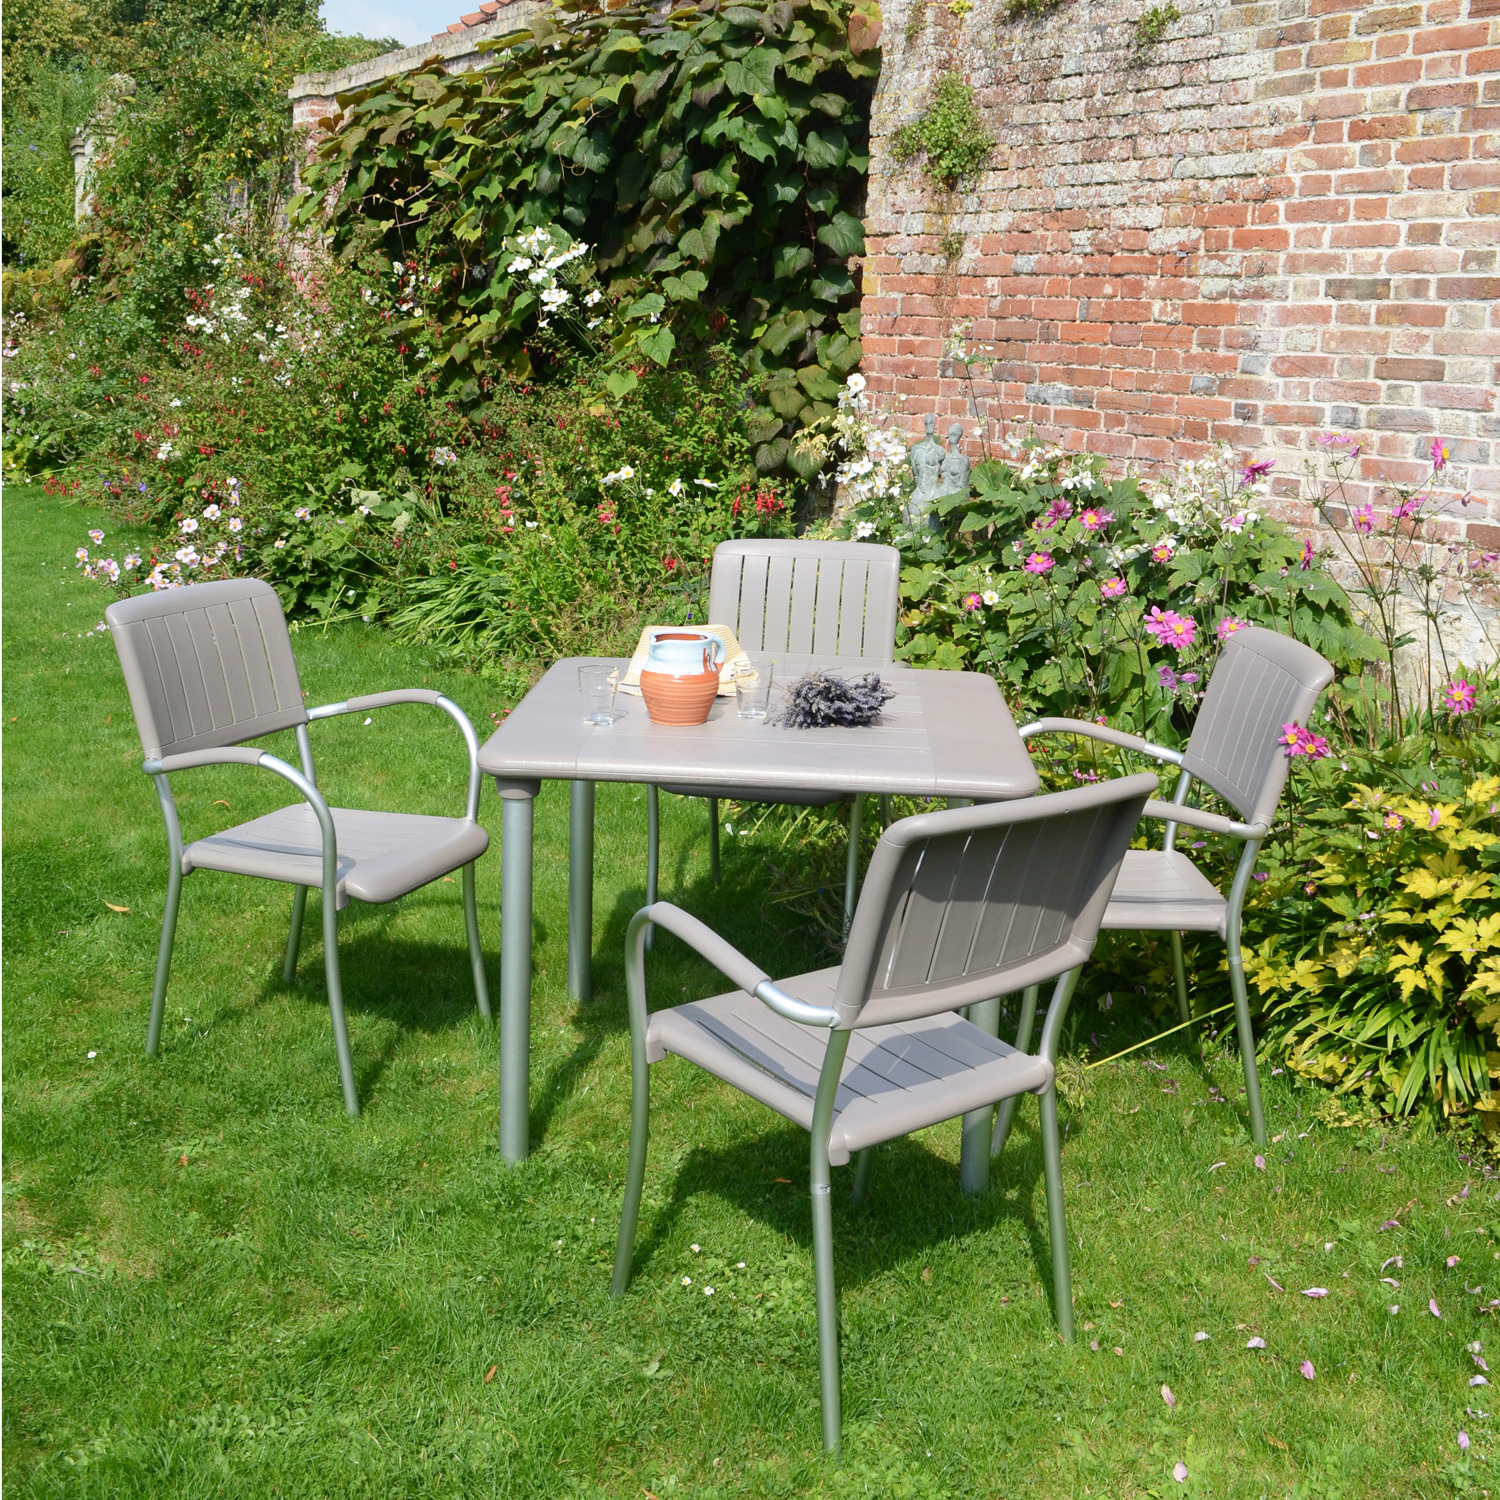 Maestrale 90 with Musa chairs in Turtle Dove